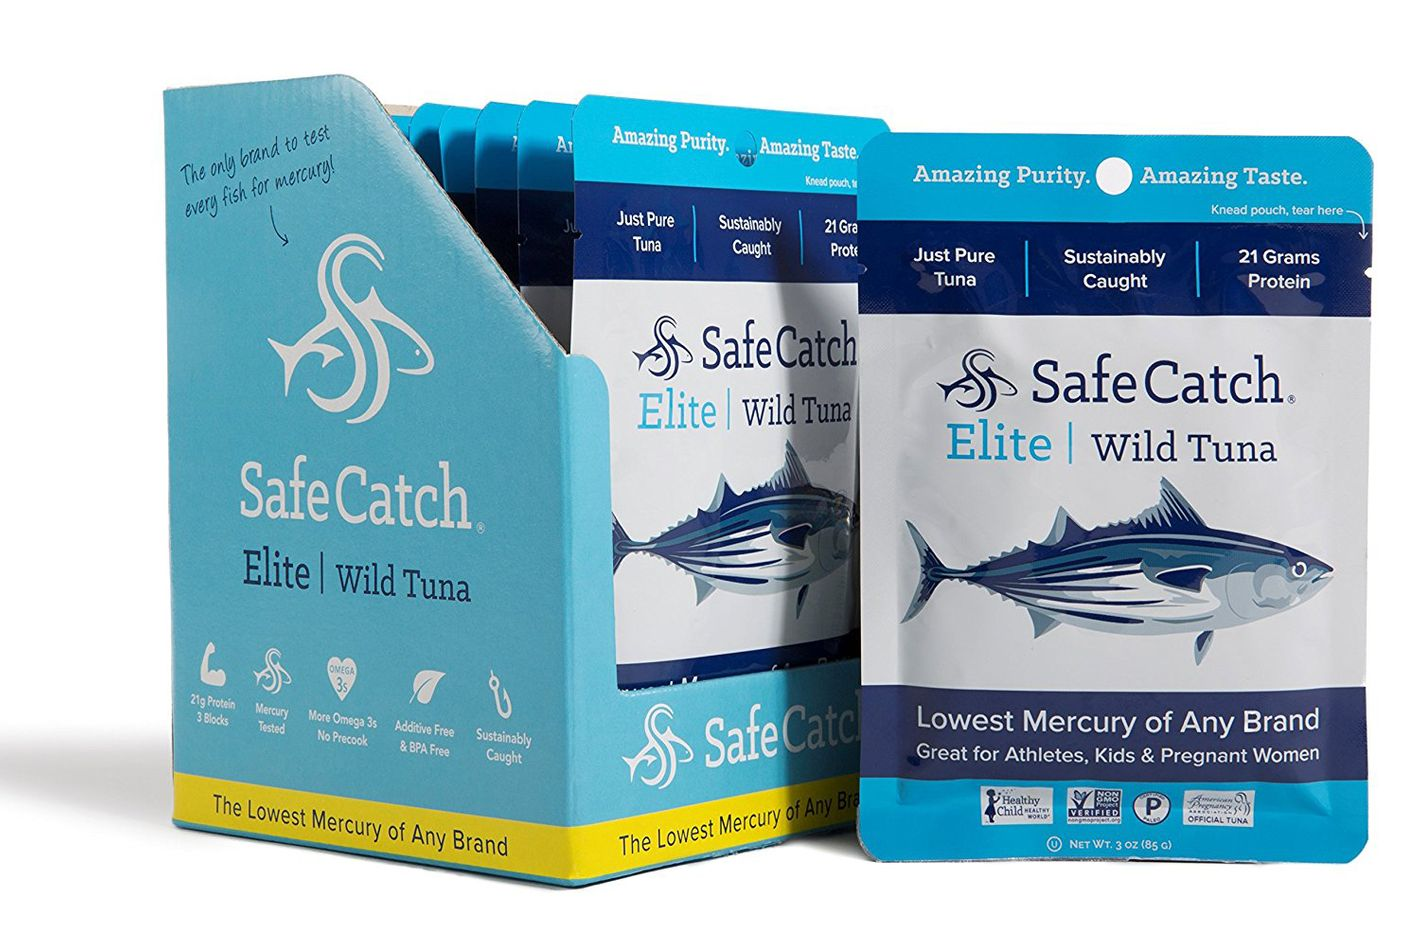 Safe Catch Elite Wild Tuna 3 oz Pouch, 12 pack